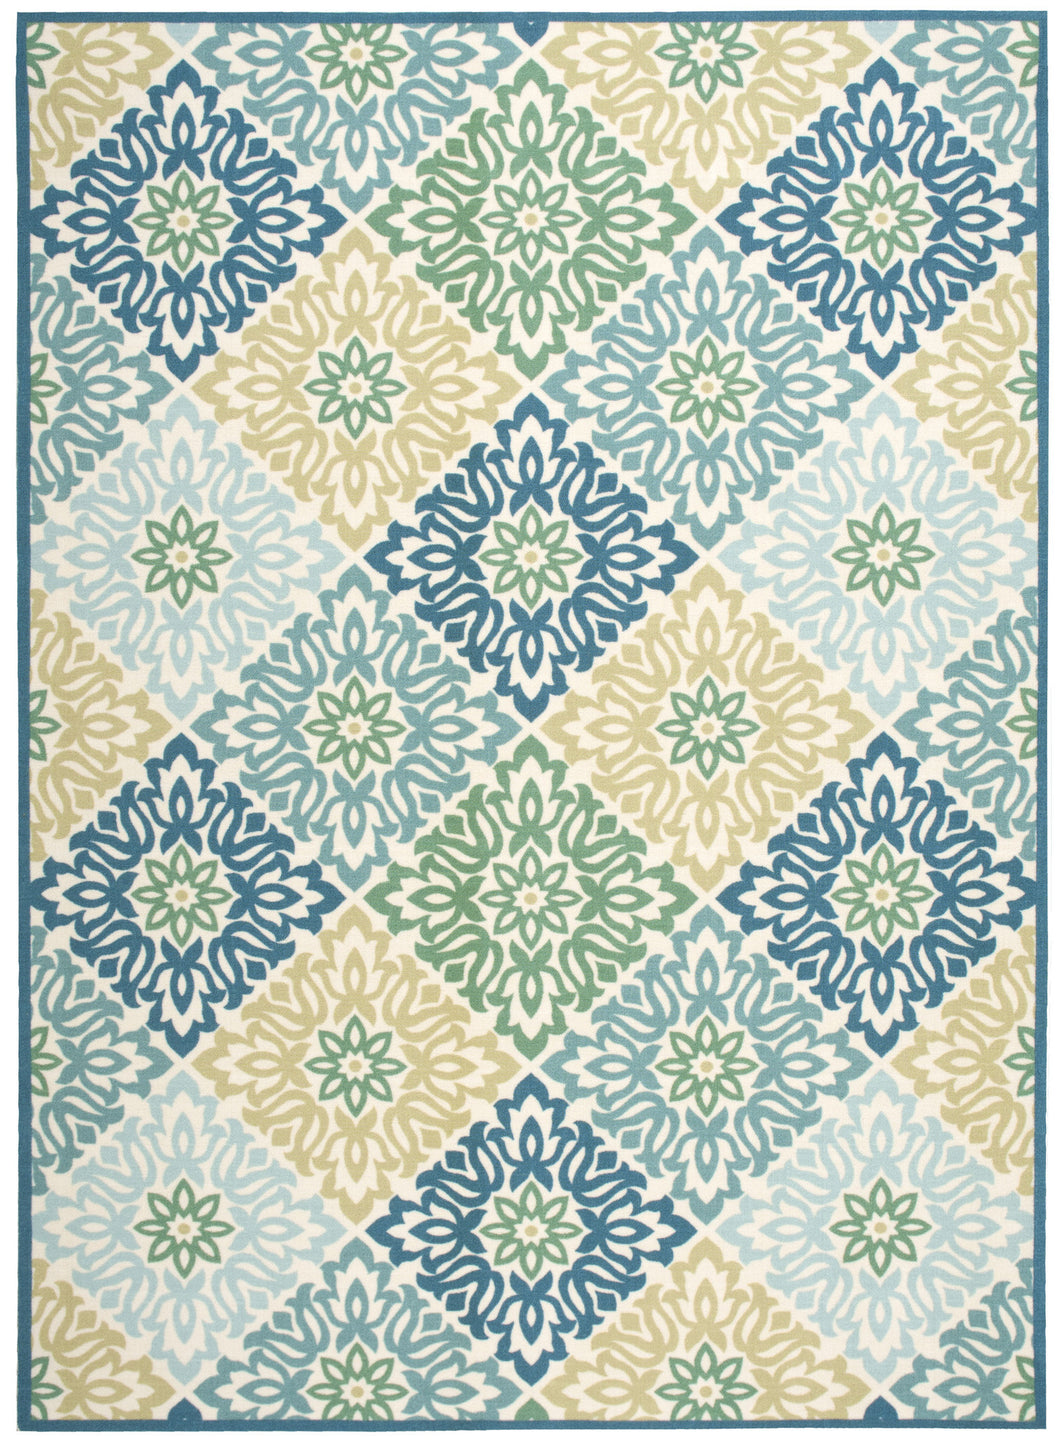 Waverly Sun & Shade Sweet Things Marine Area Rug By Nourison SND23 MARIN